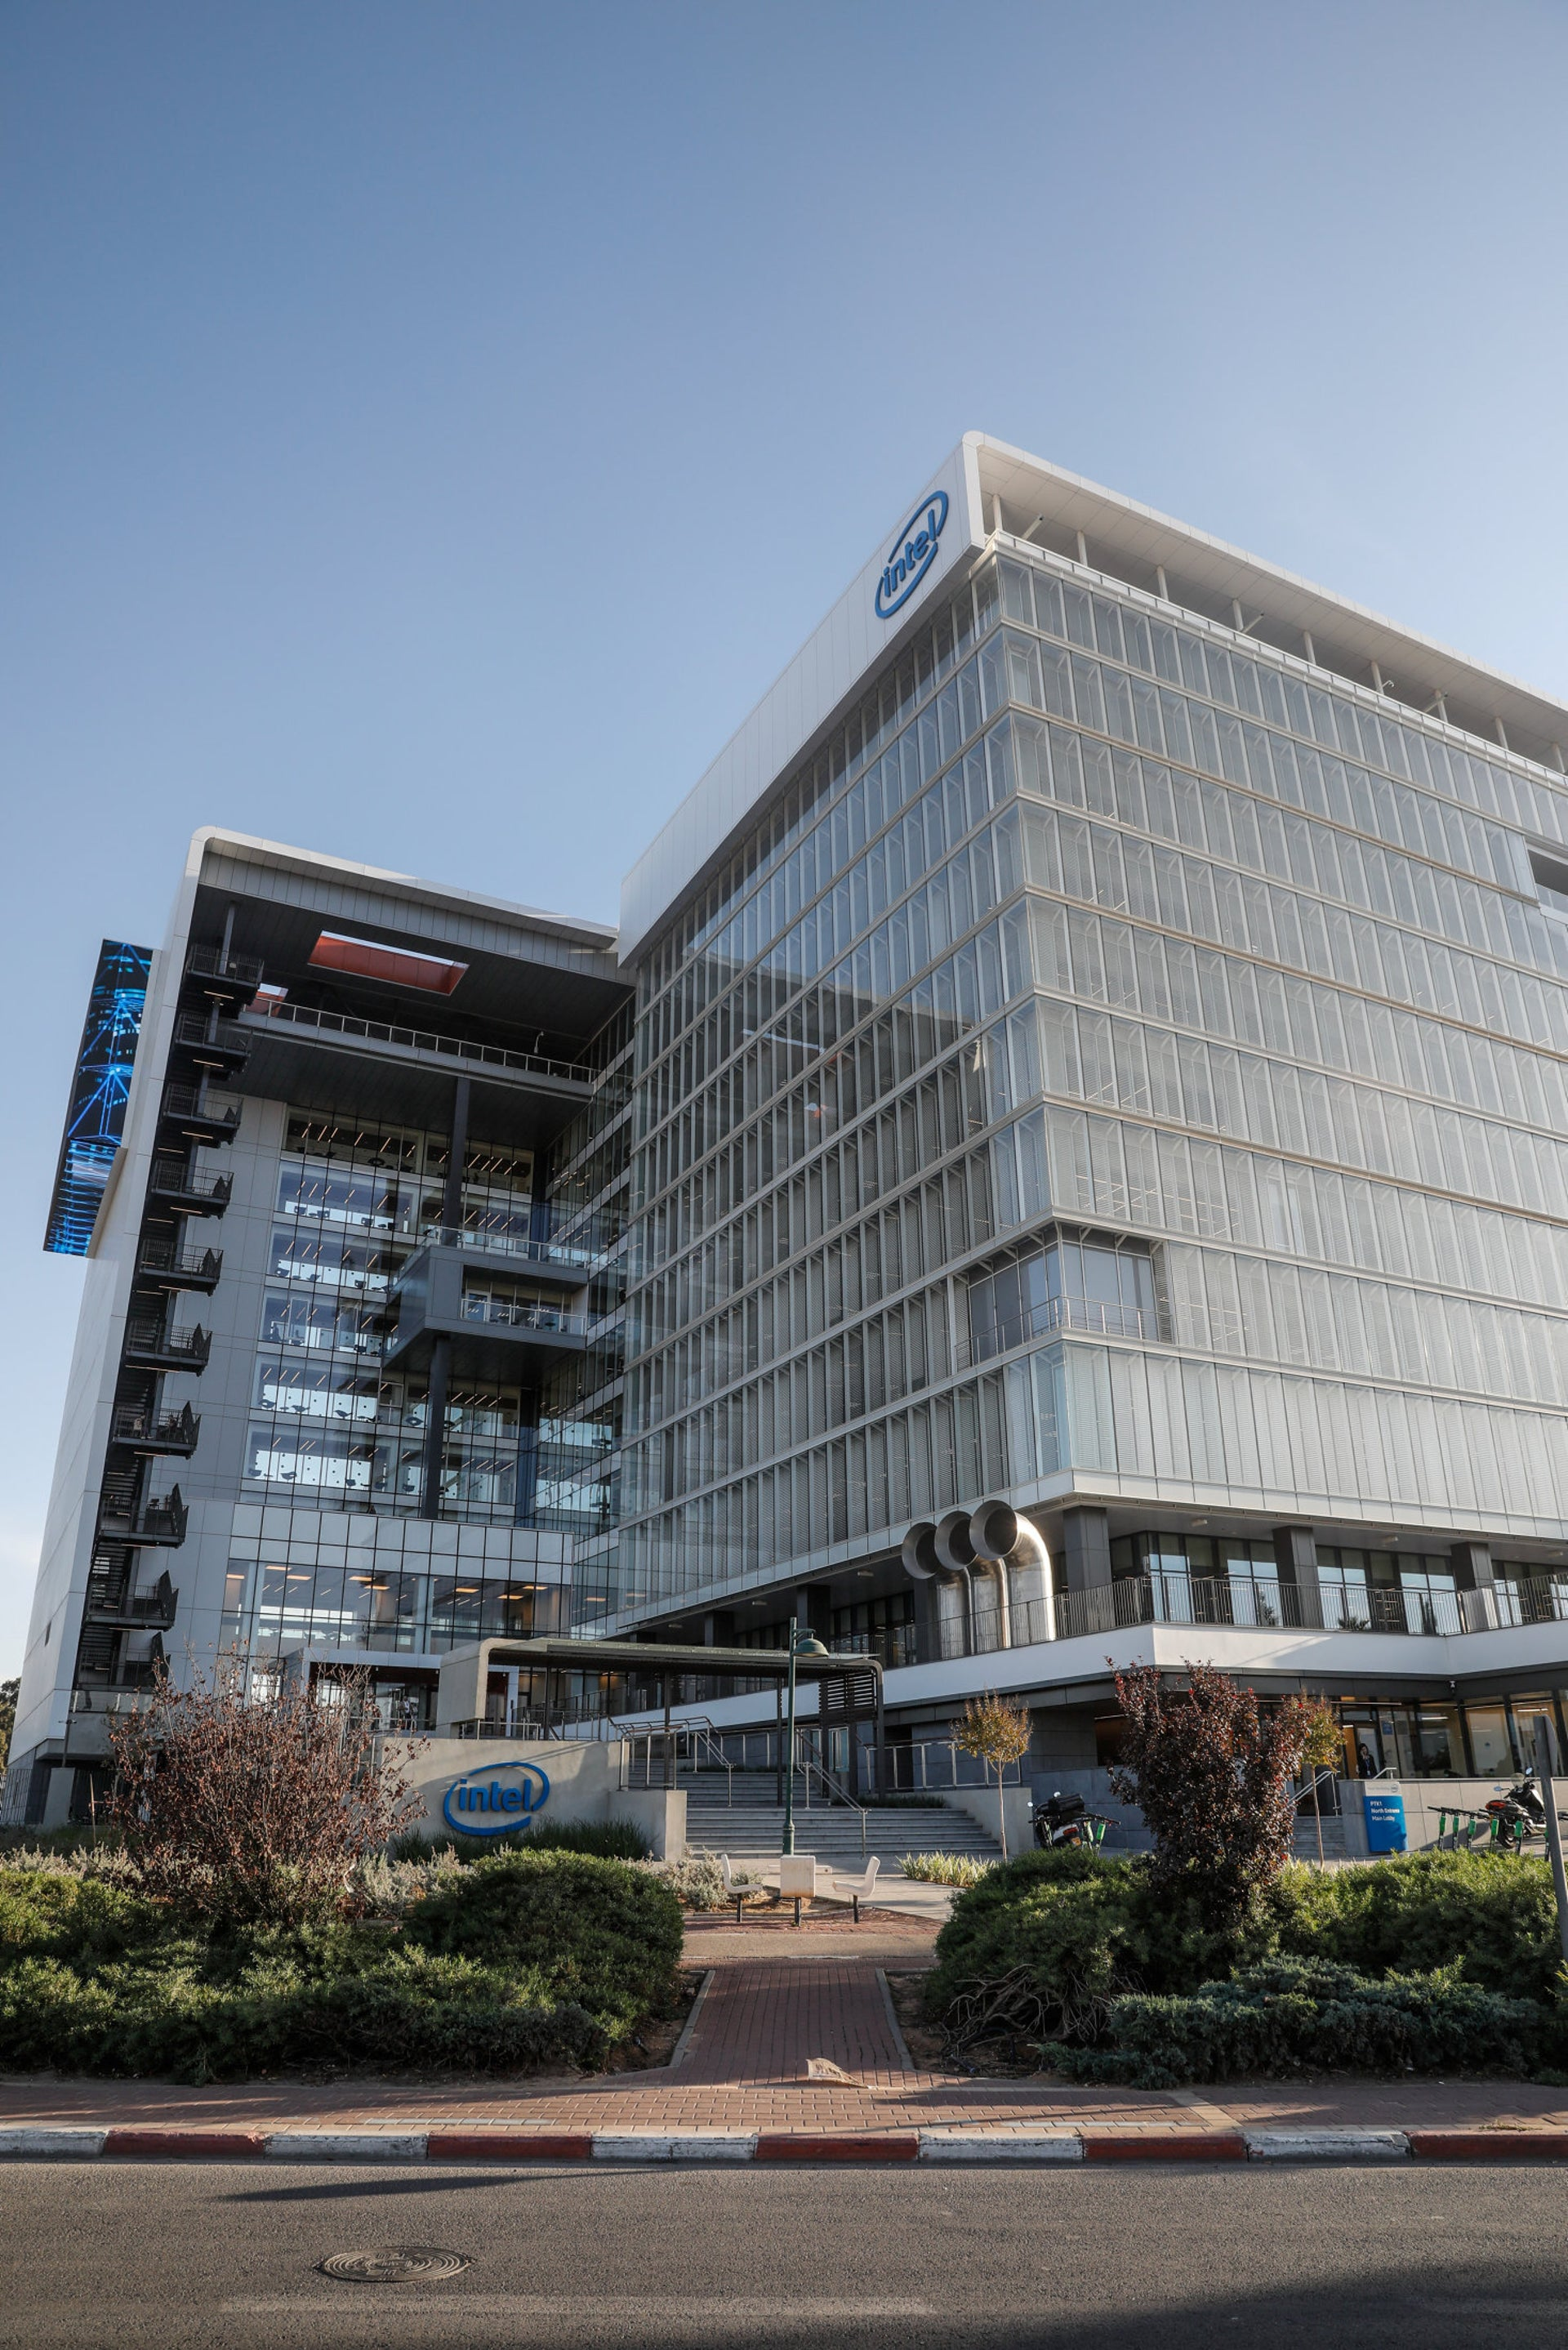 Intel Israel's new headquarters. Located in Kiryat Arye, a bland office park, cut off from the urban fabric.